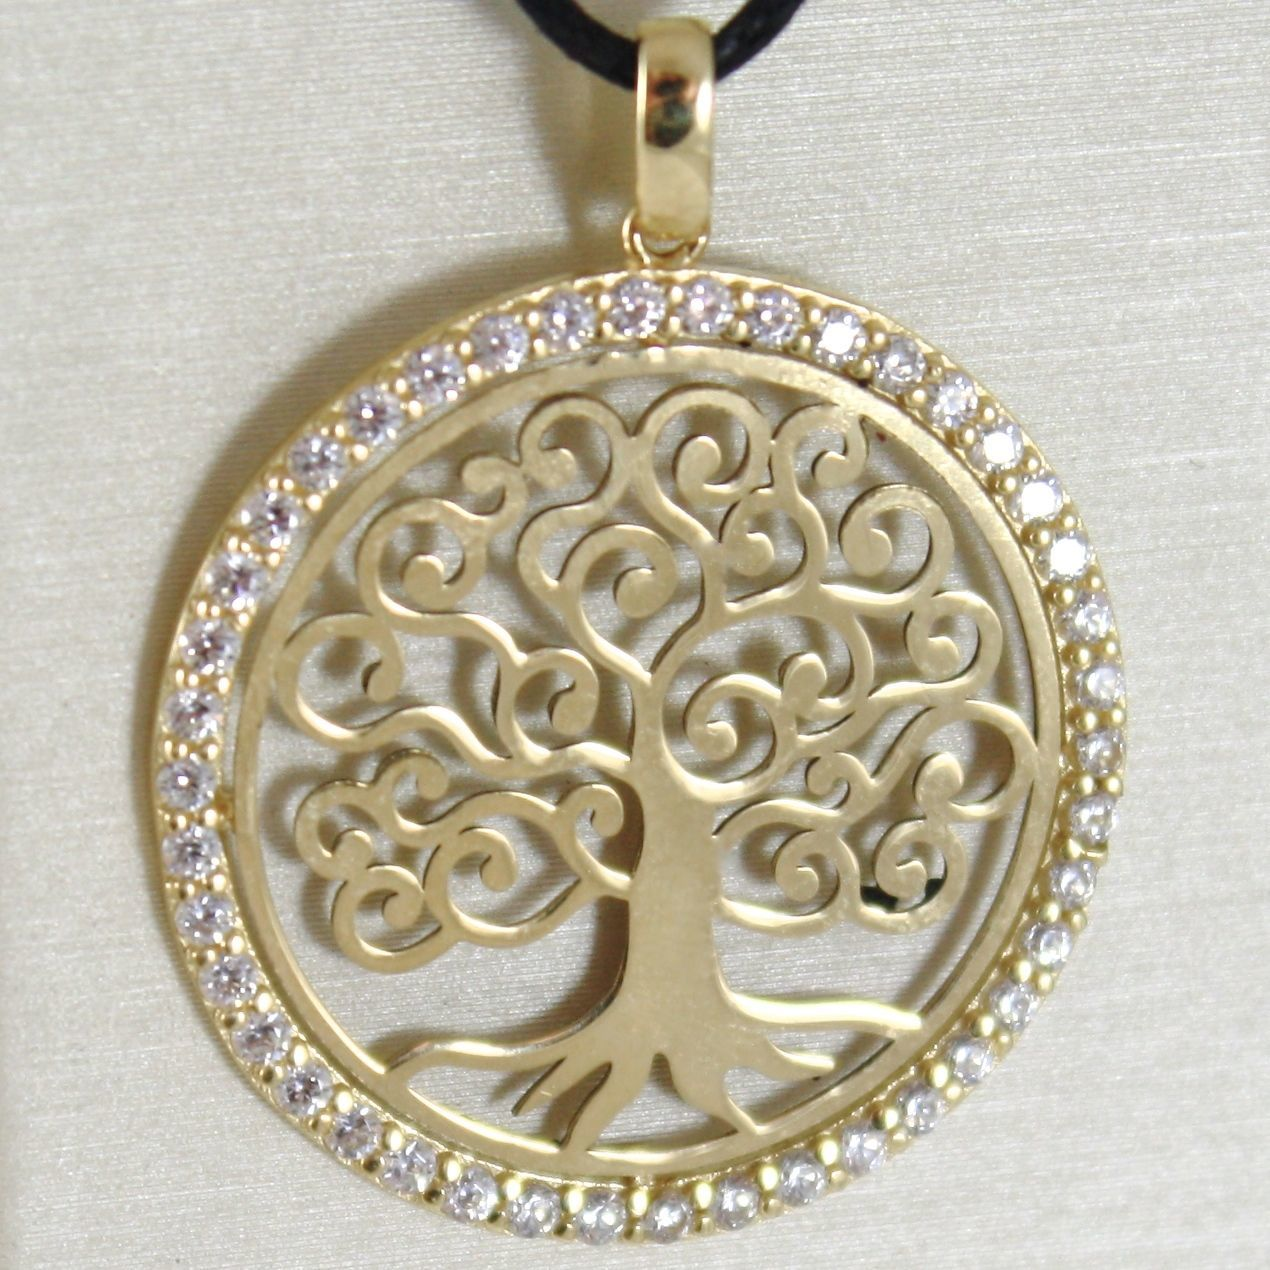 YELLOW GOLD PENDANT 750 18K, TREE OF LIFE, FRAME ZIRCON, MADE IN ITALY